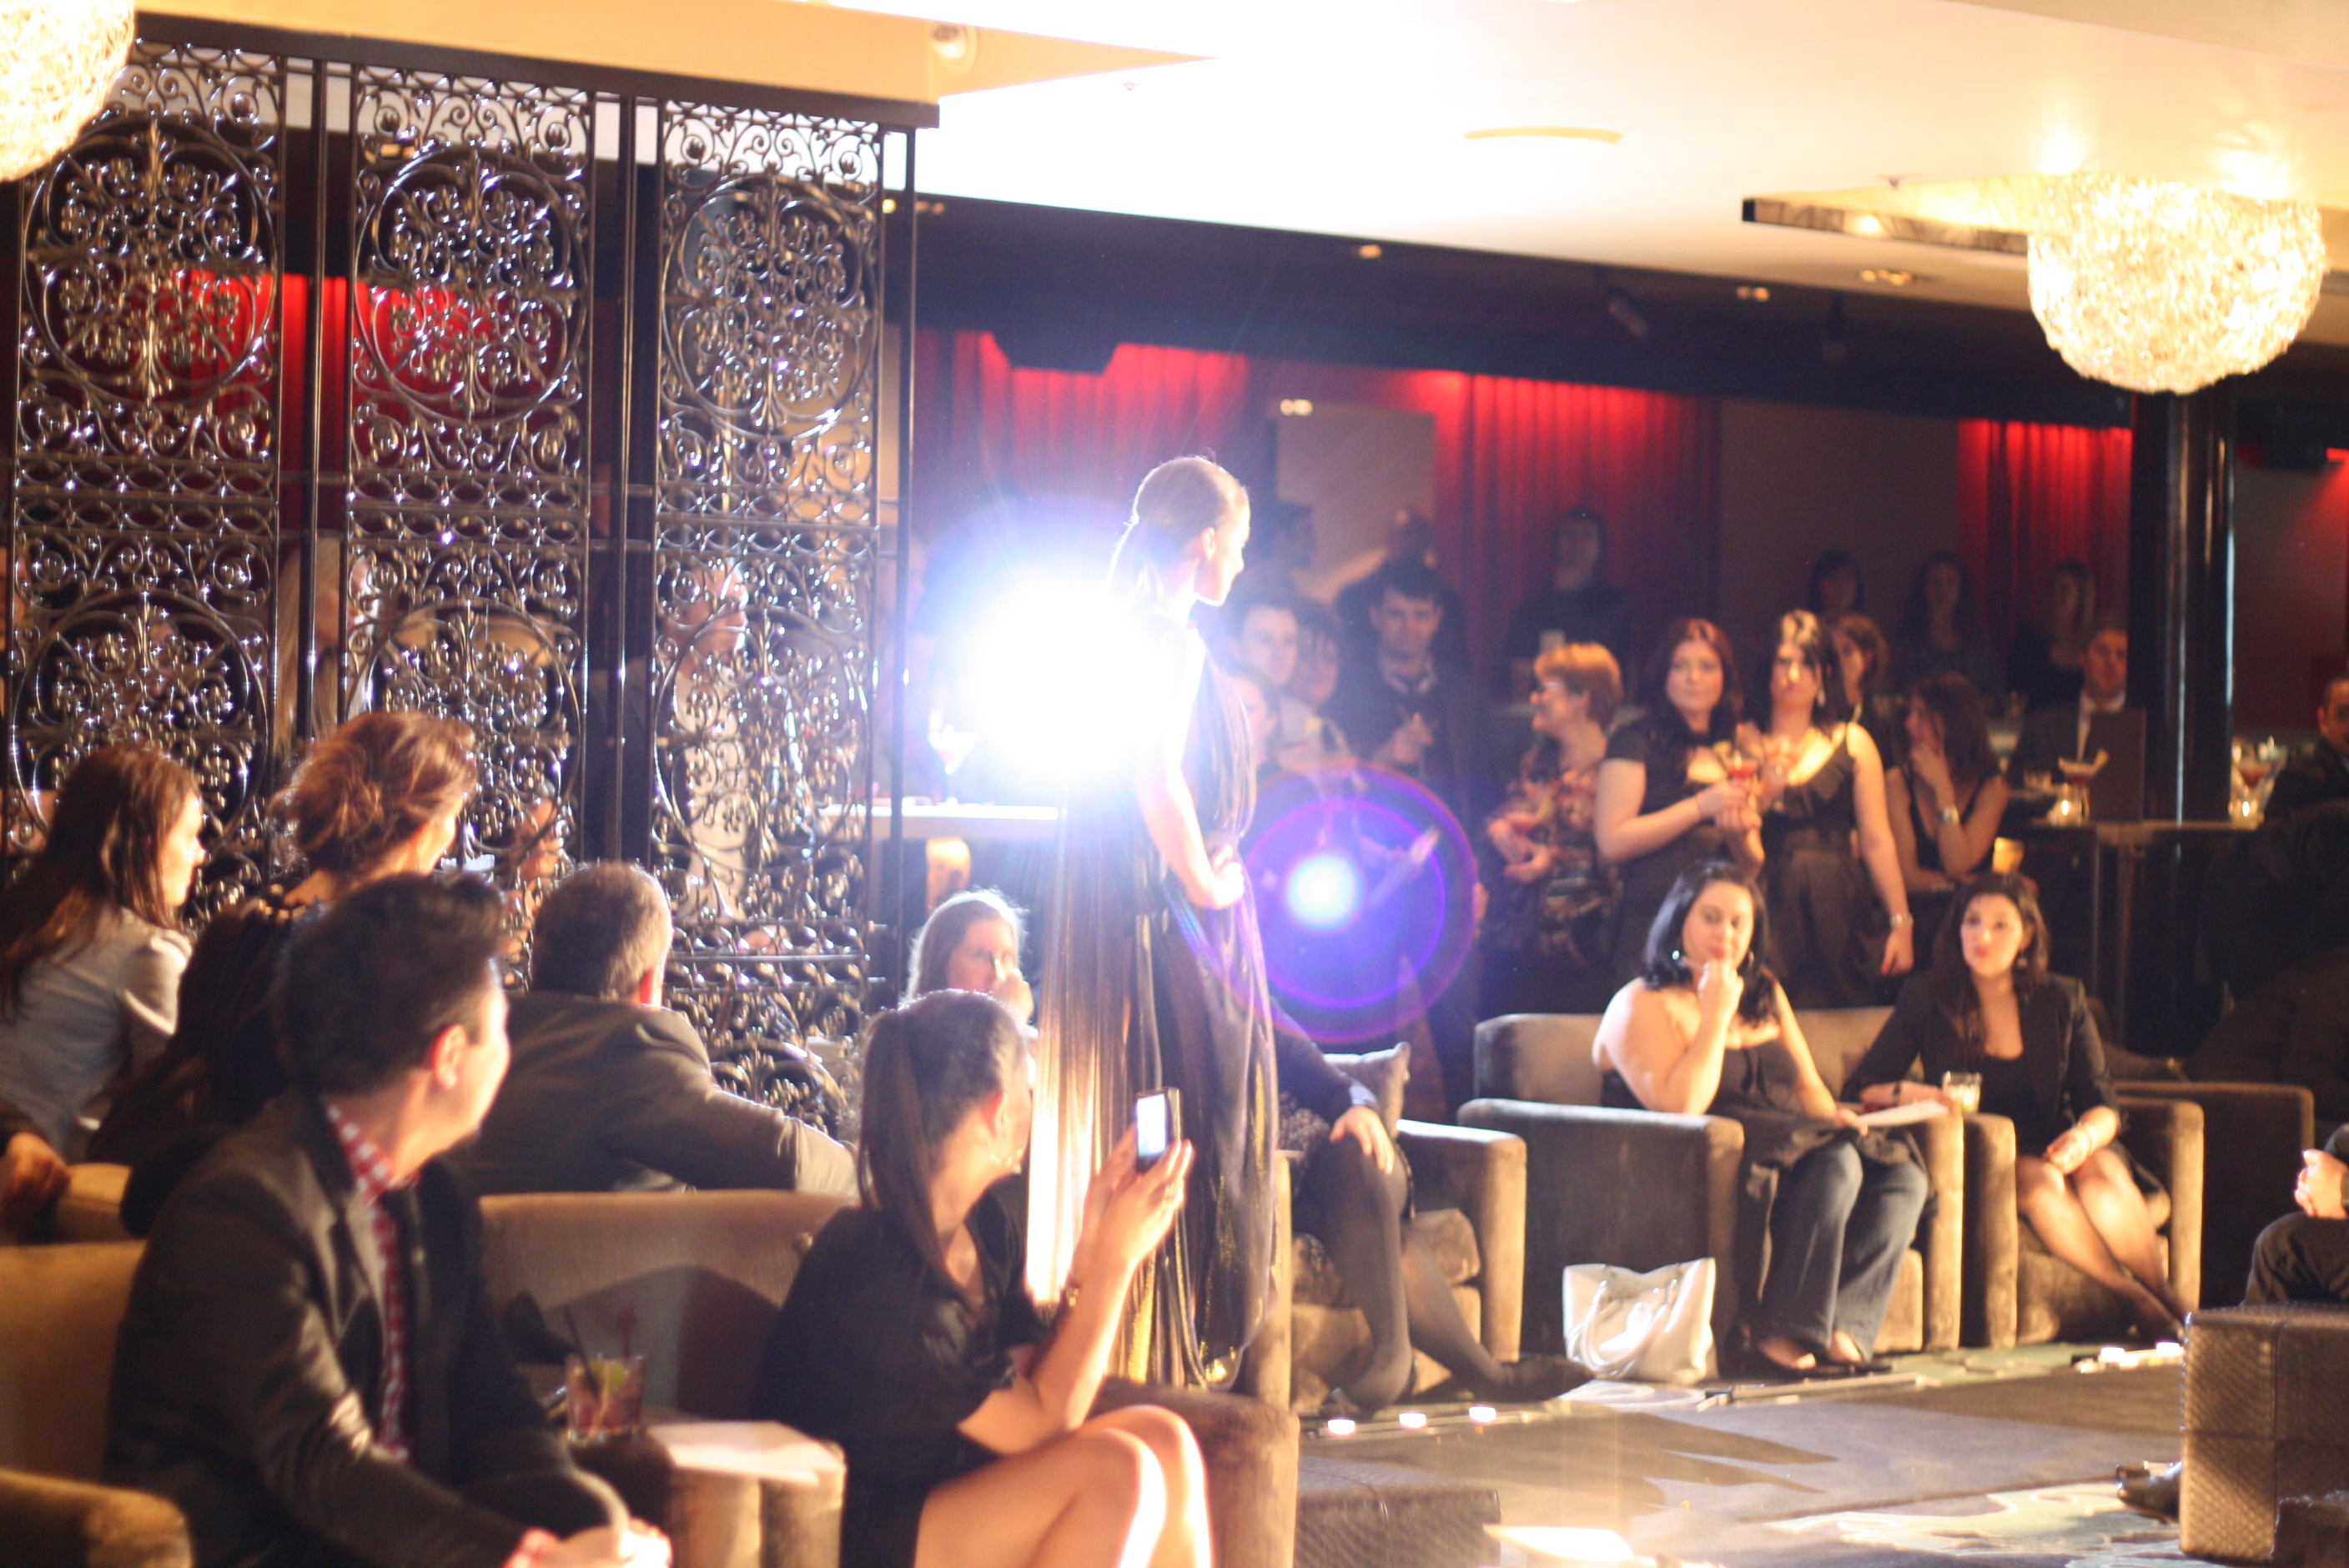 Model walking down a runway amongst a crowd of people with camera flashes popping around her.